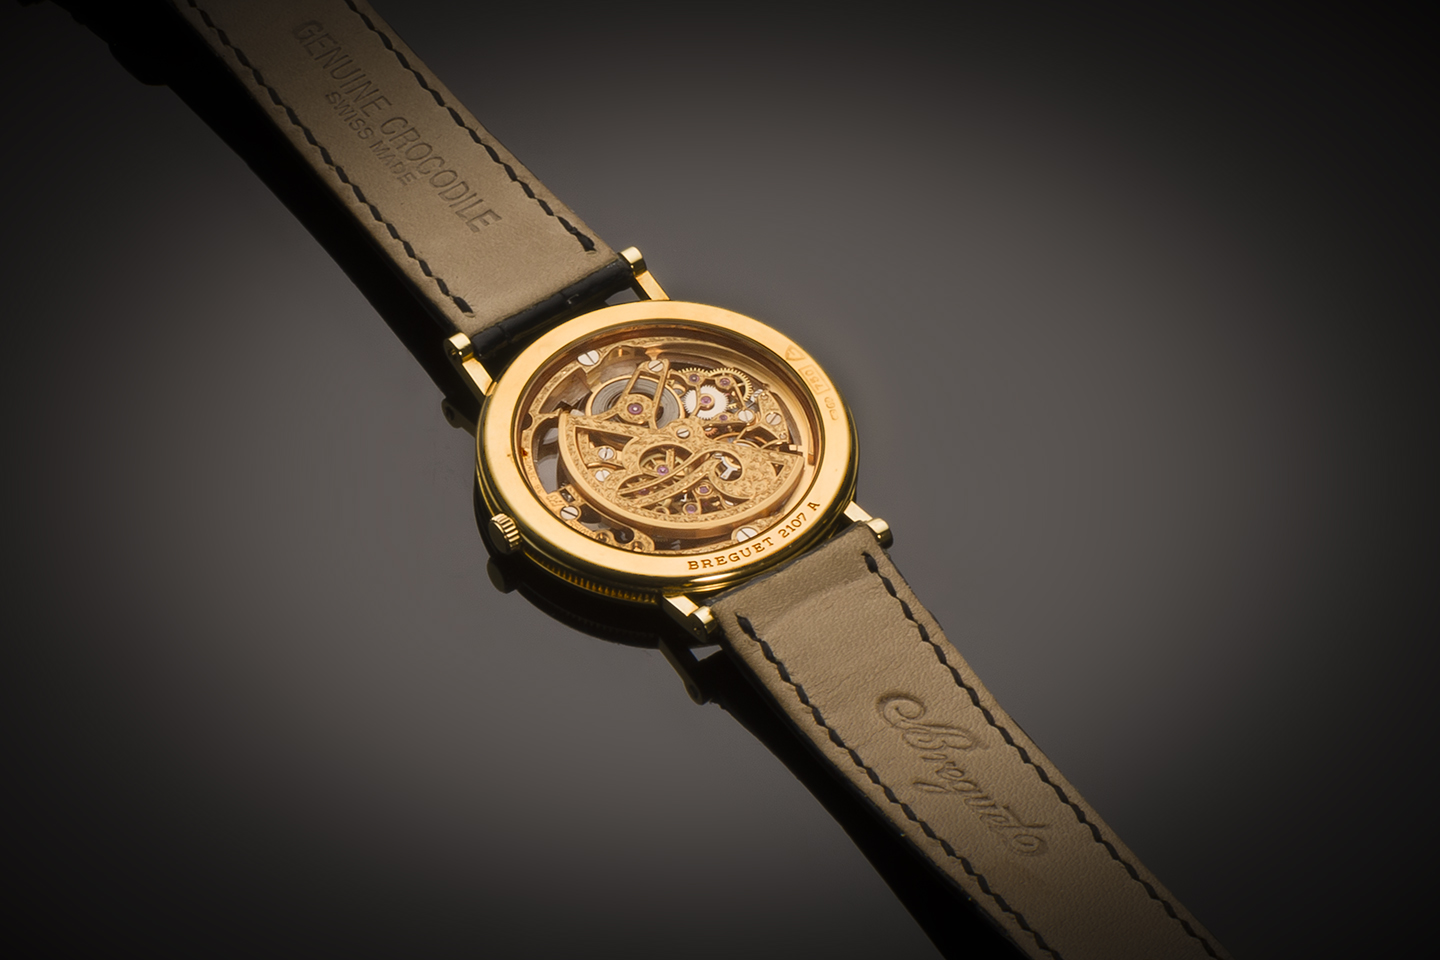 Montre Breguet squelette extra-plate or-2